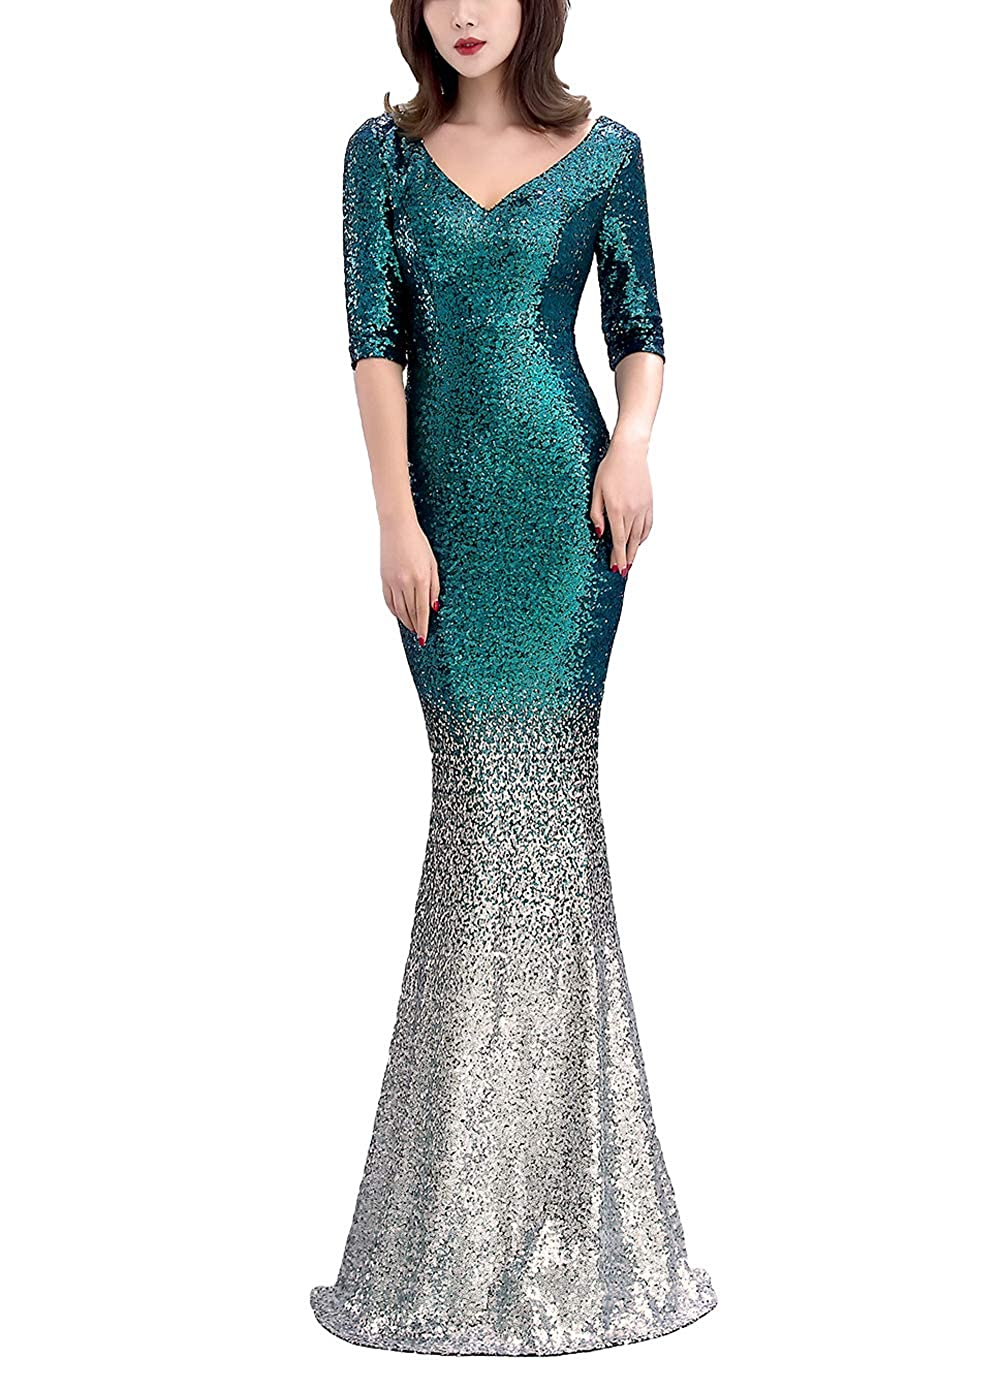 16116greensilver Chowsir Women Sexy Elegant Slim Sequin Long Cocktail Party Evening Dress